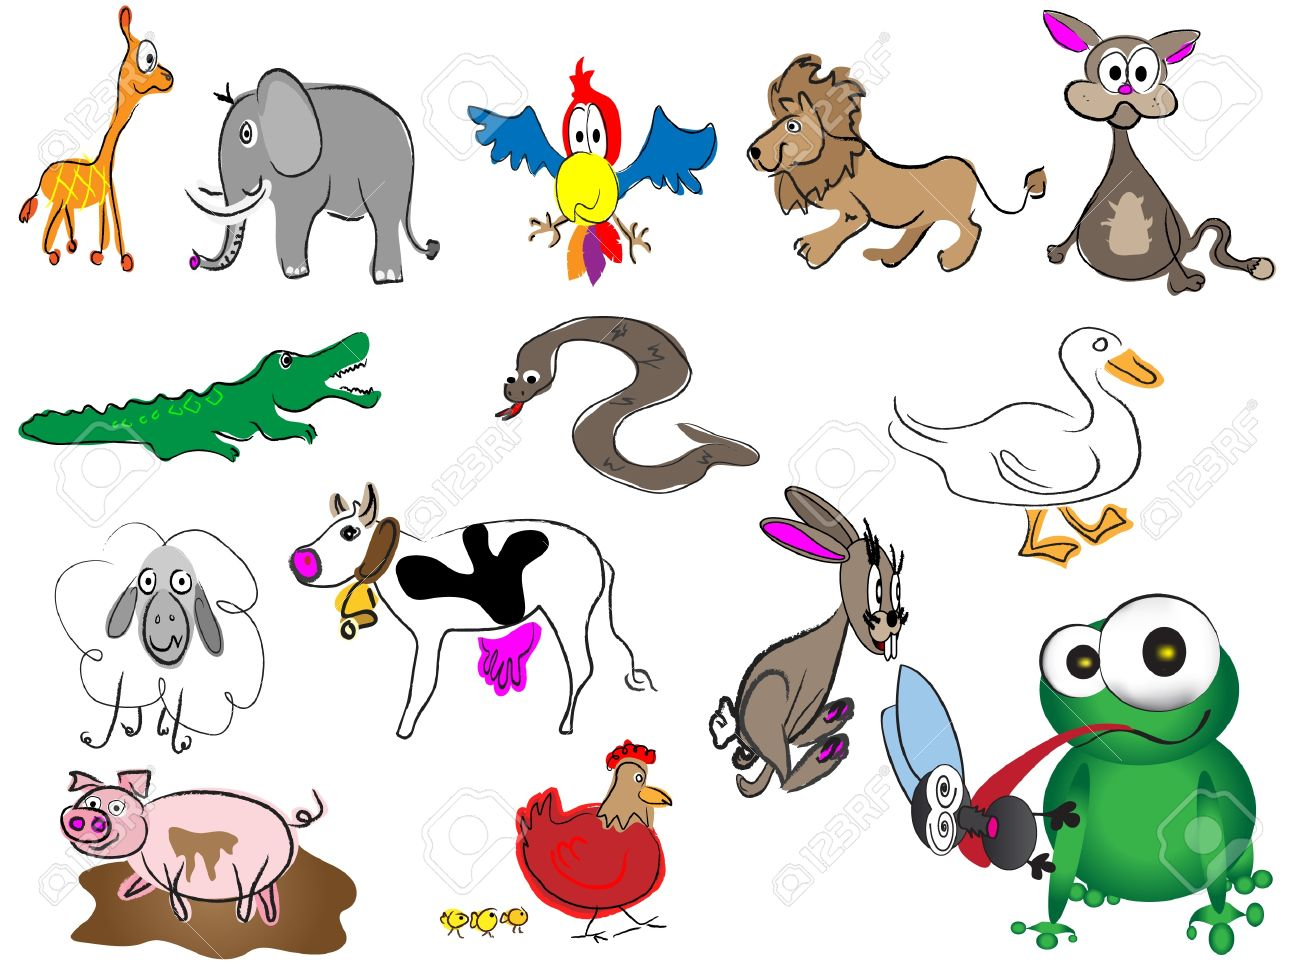 The zoology coloring book - Personality Adorable Cartoon Hand Drawn Animals Illustration